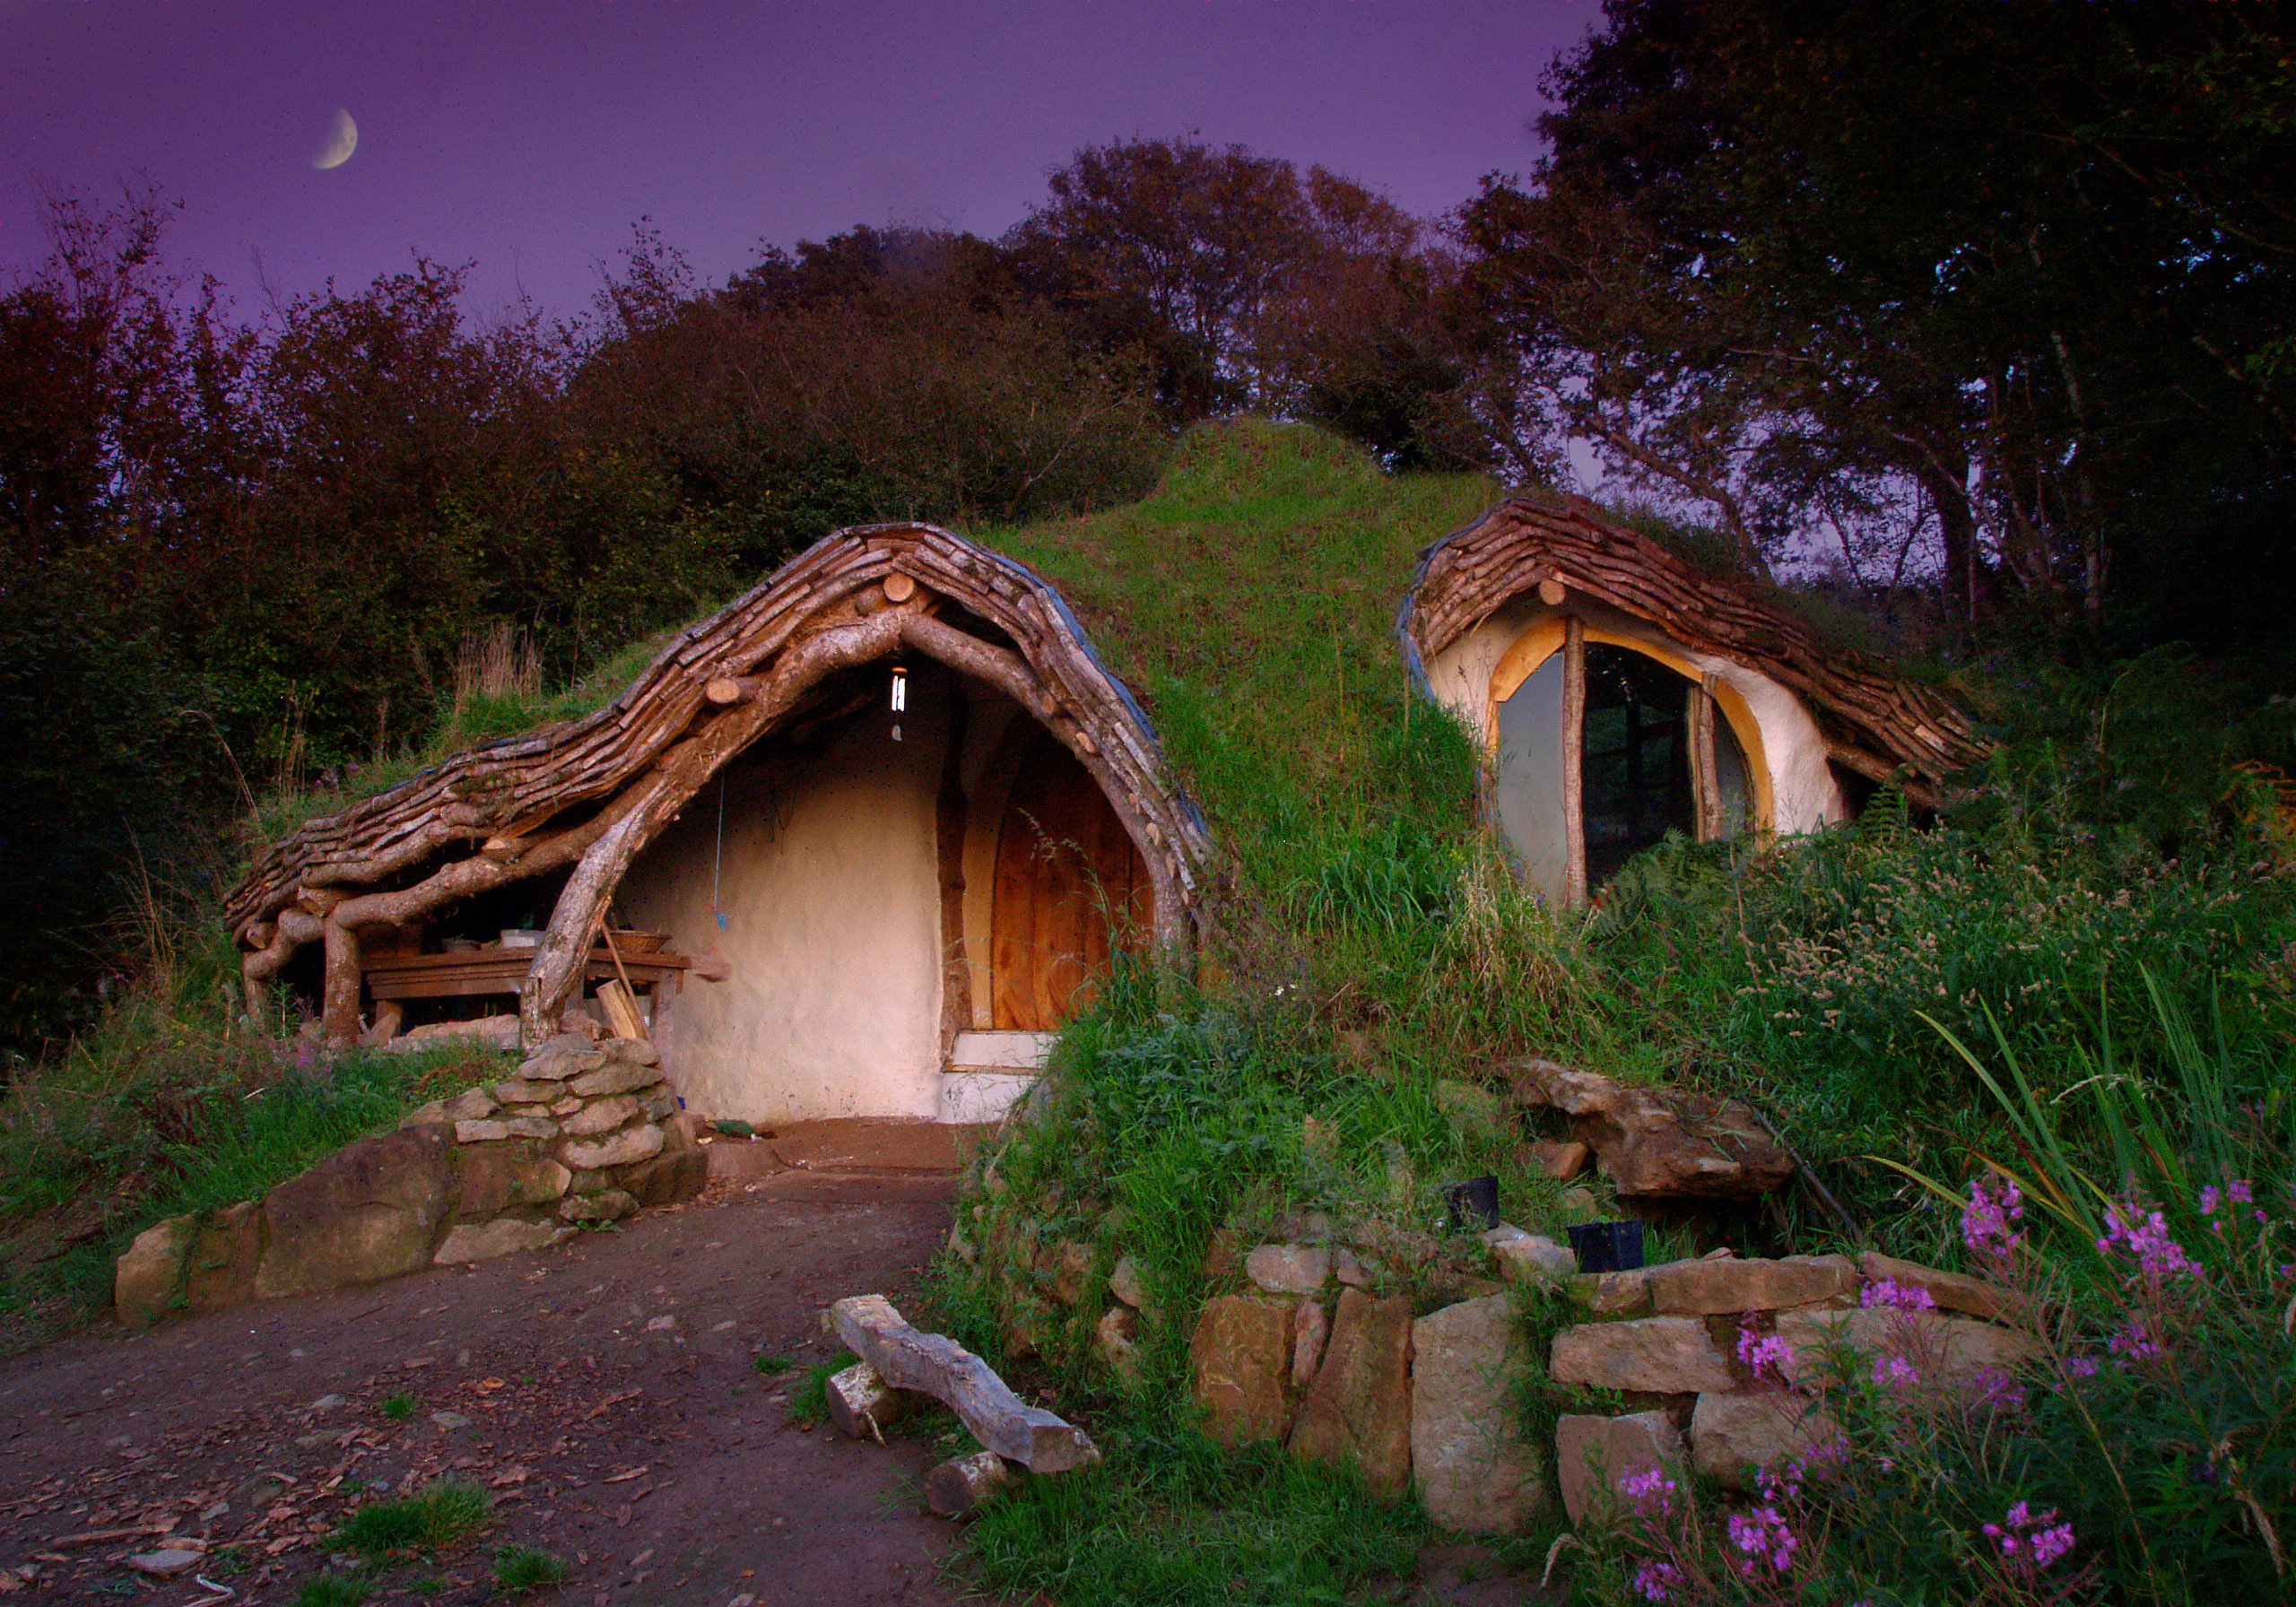 Eco house of the future, Hobbit House in Wales, ph. by Simon